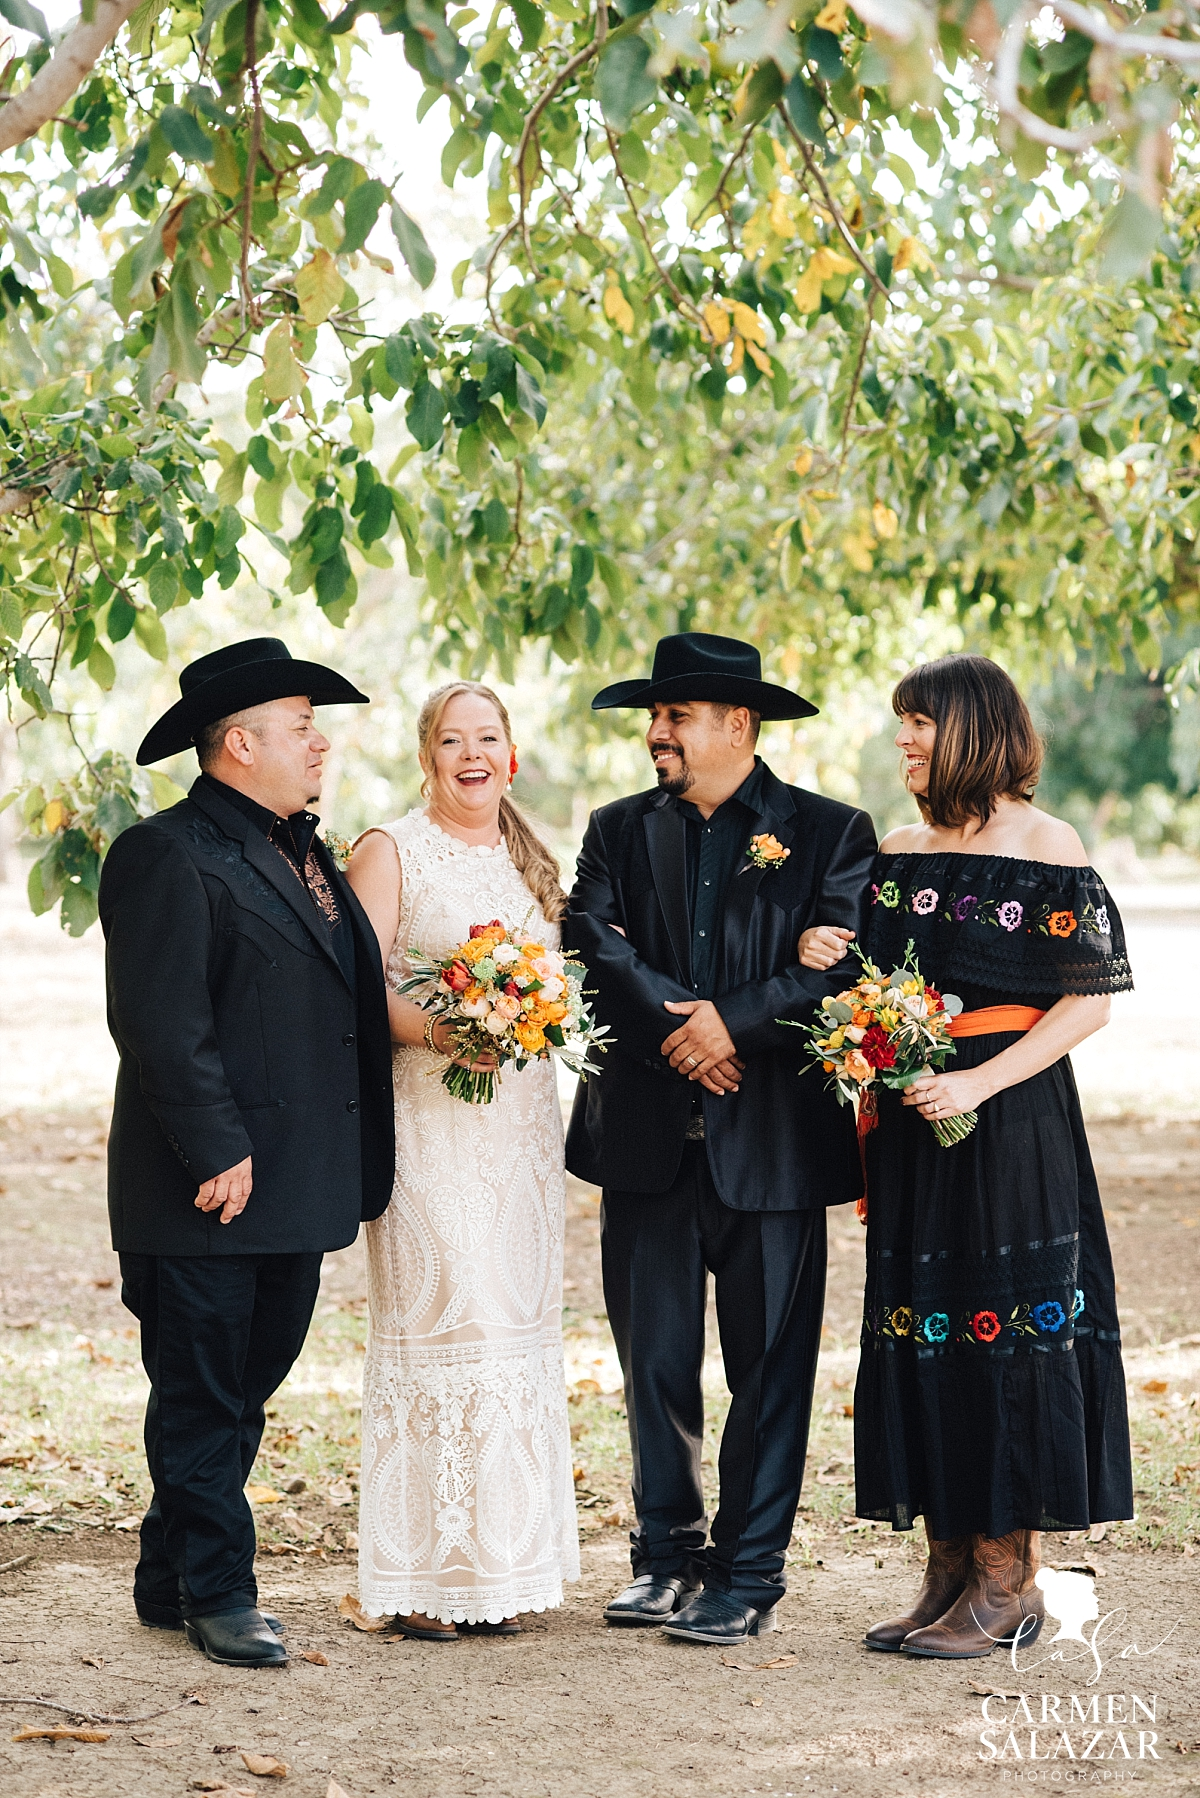 Intimate Mexican wedding party on farm - Carmen Salazar